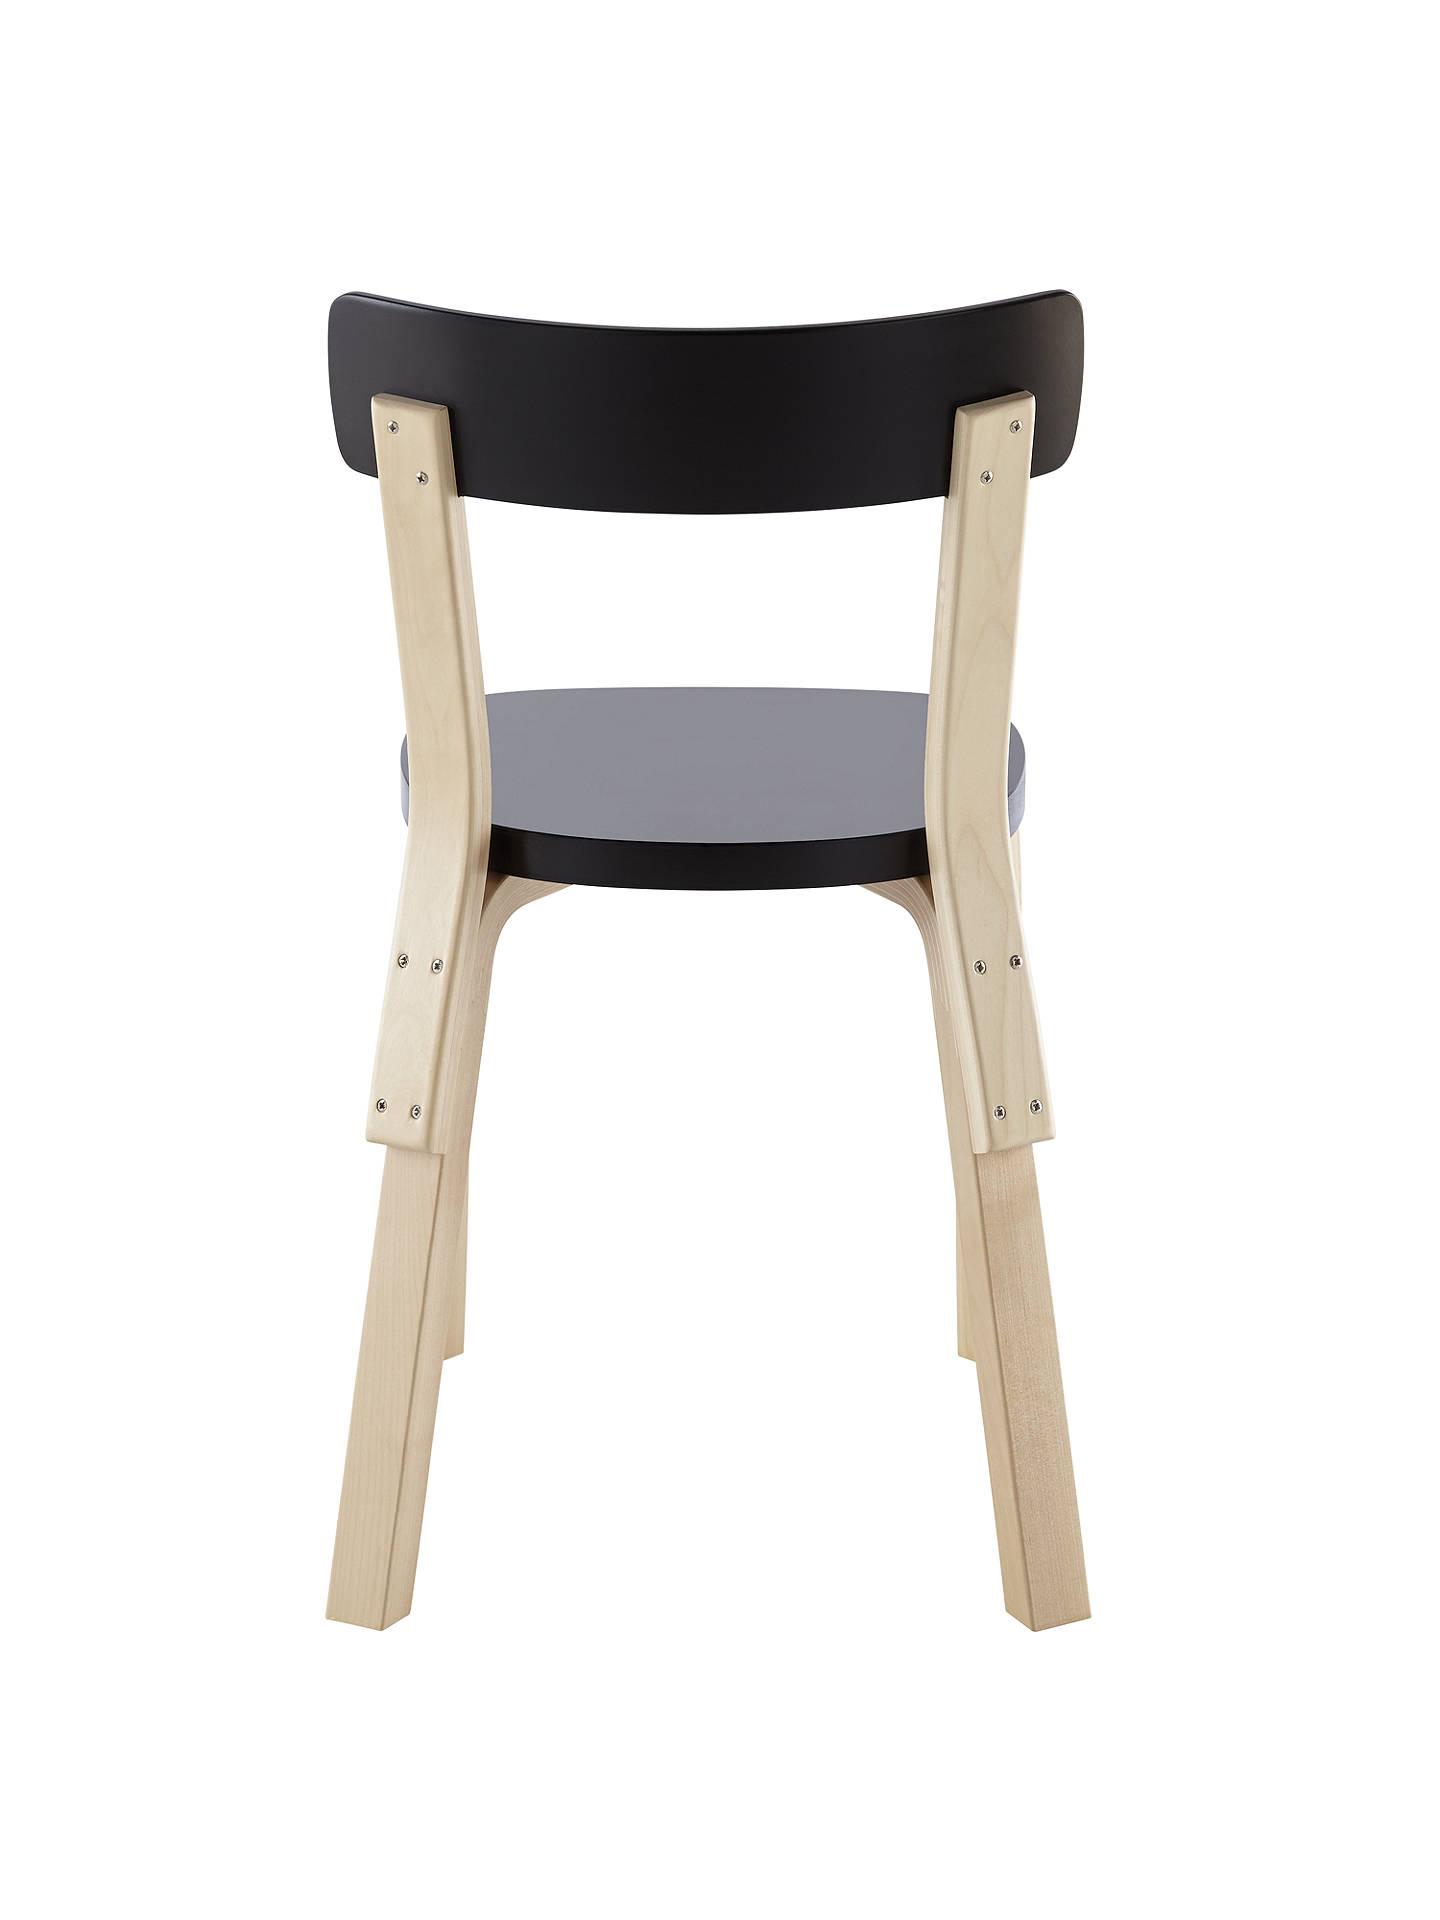 BuyArtek Chair 69, Birch / Black Online at johnlewis.com